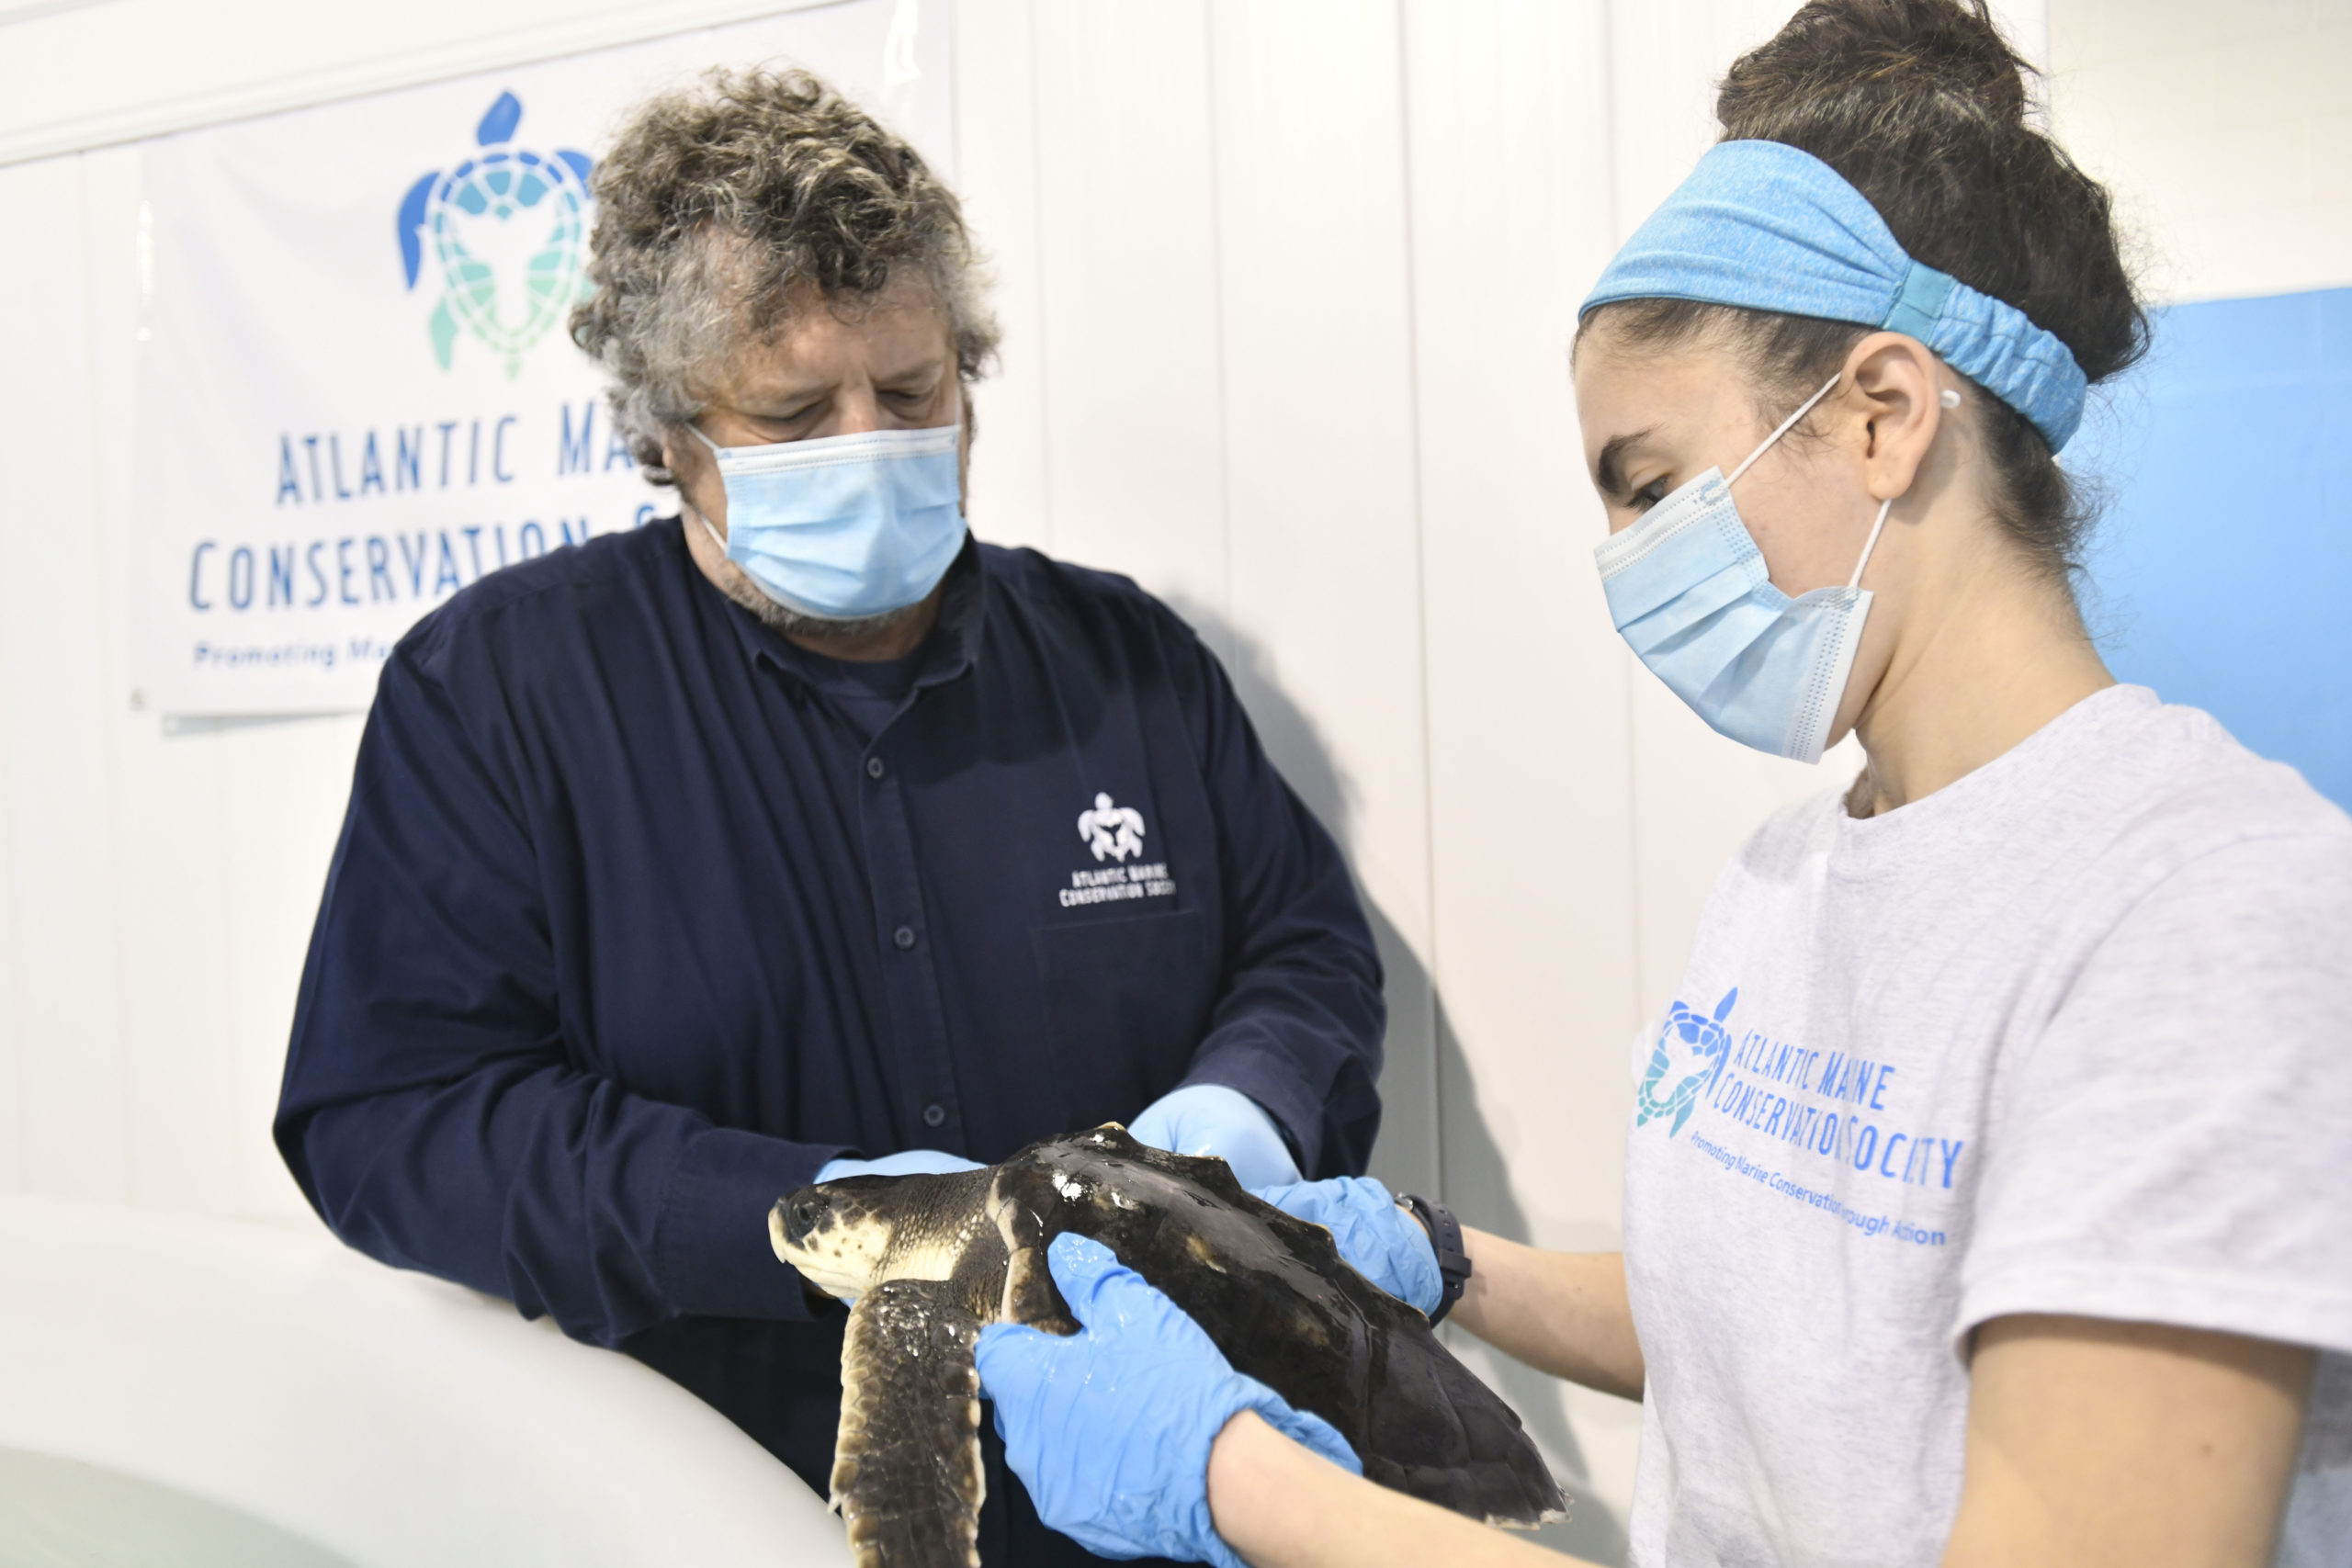 Robert DiGiovanni and Sammi Chaves work to fix the band on one of the cold stunned Kemp's ridley sea turtles residing at Atlantic Marine Conservation Society. DANA SHAW